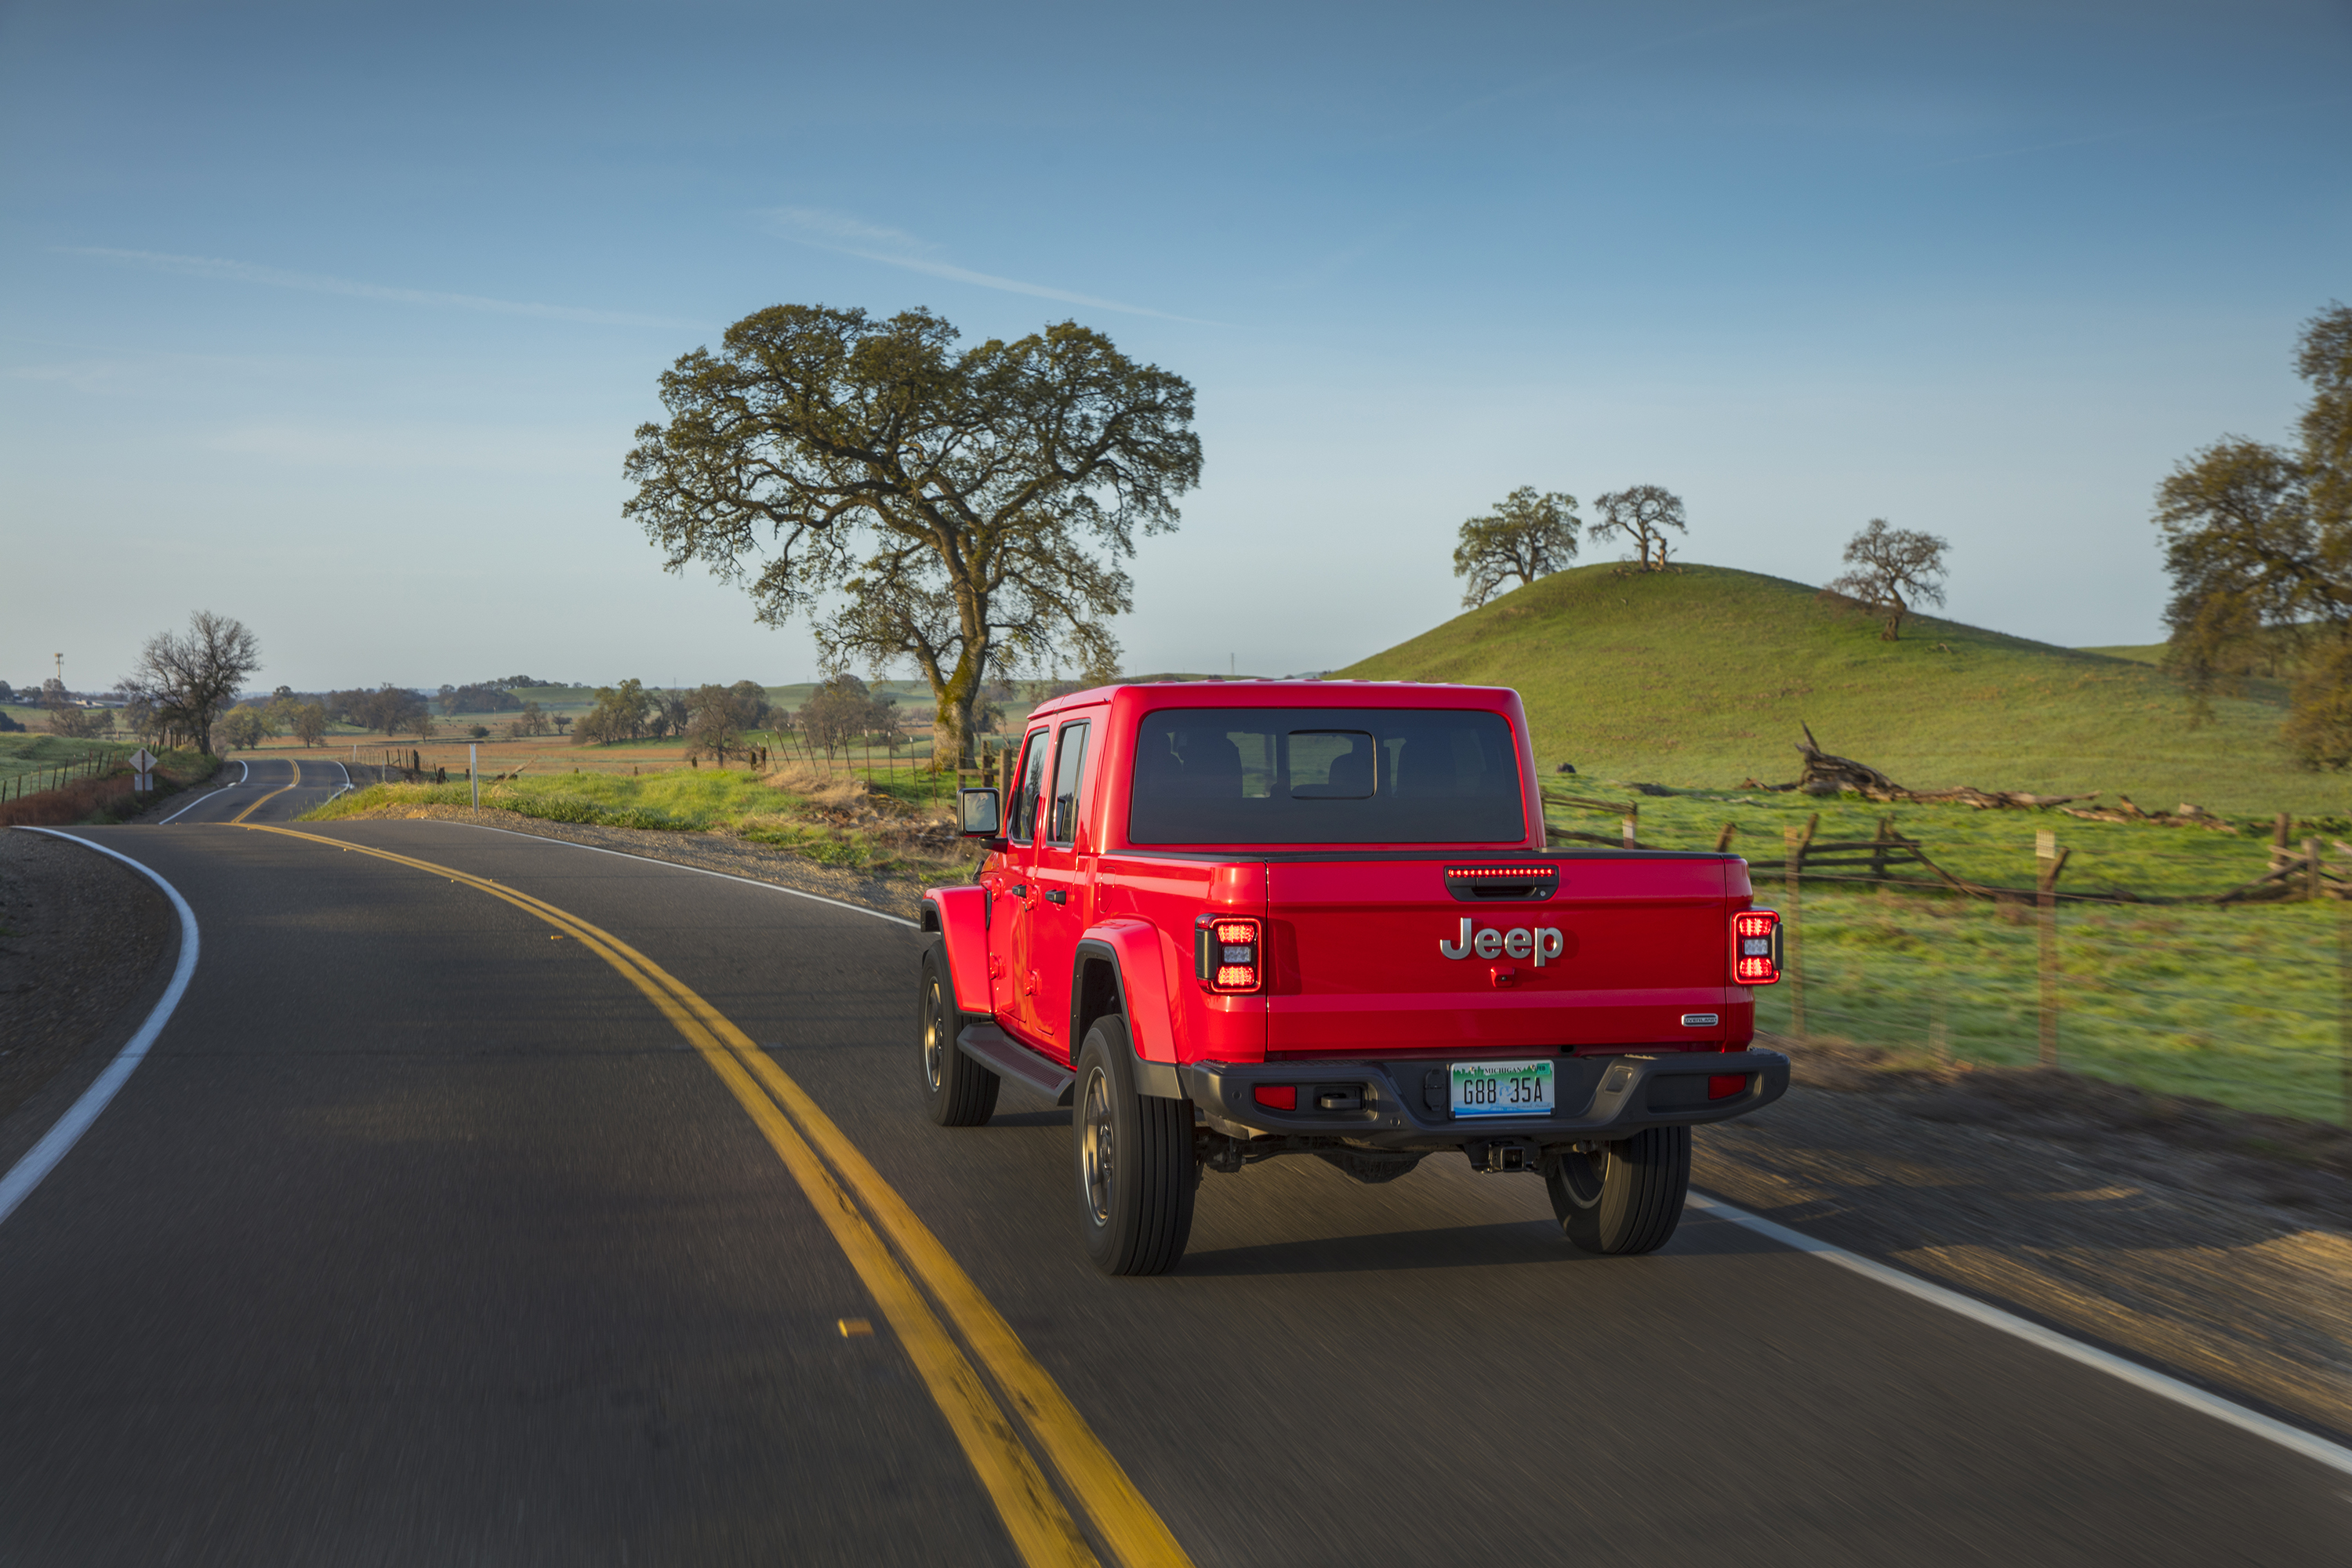 Manufacturer photo: The all-new 2020 Gladiator builds on a rich heritage of tough, dependable Jeep trucks with an unmatched combination of rugged utility, authentic Jeep design, open-air freedom, clever functionality and versatility, best-in-class towing and 4x4 payload, advanced fuel-efficient powertrains, superior on- and off-road dynamics and a host of innovative safety and advanced technology features.